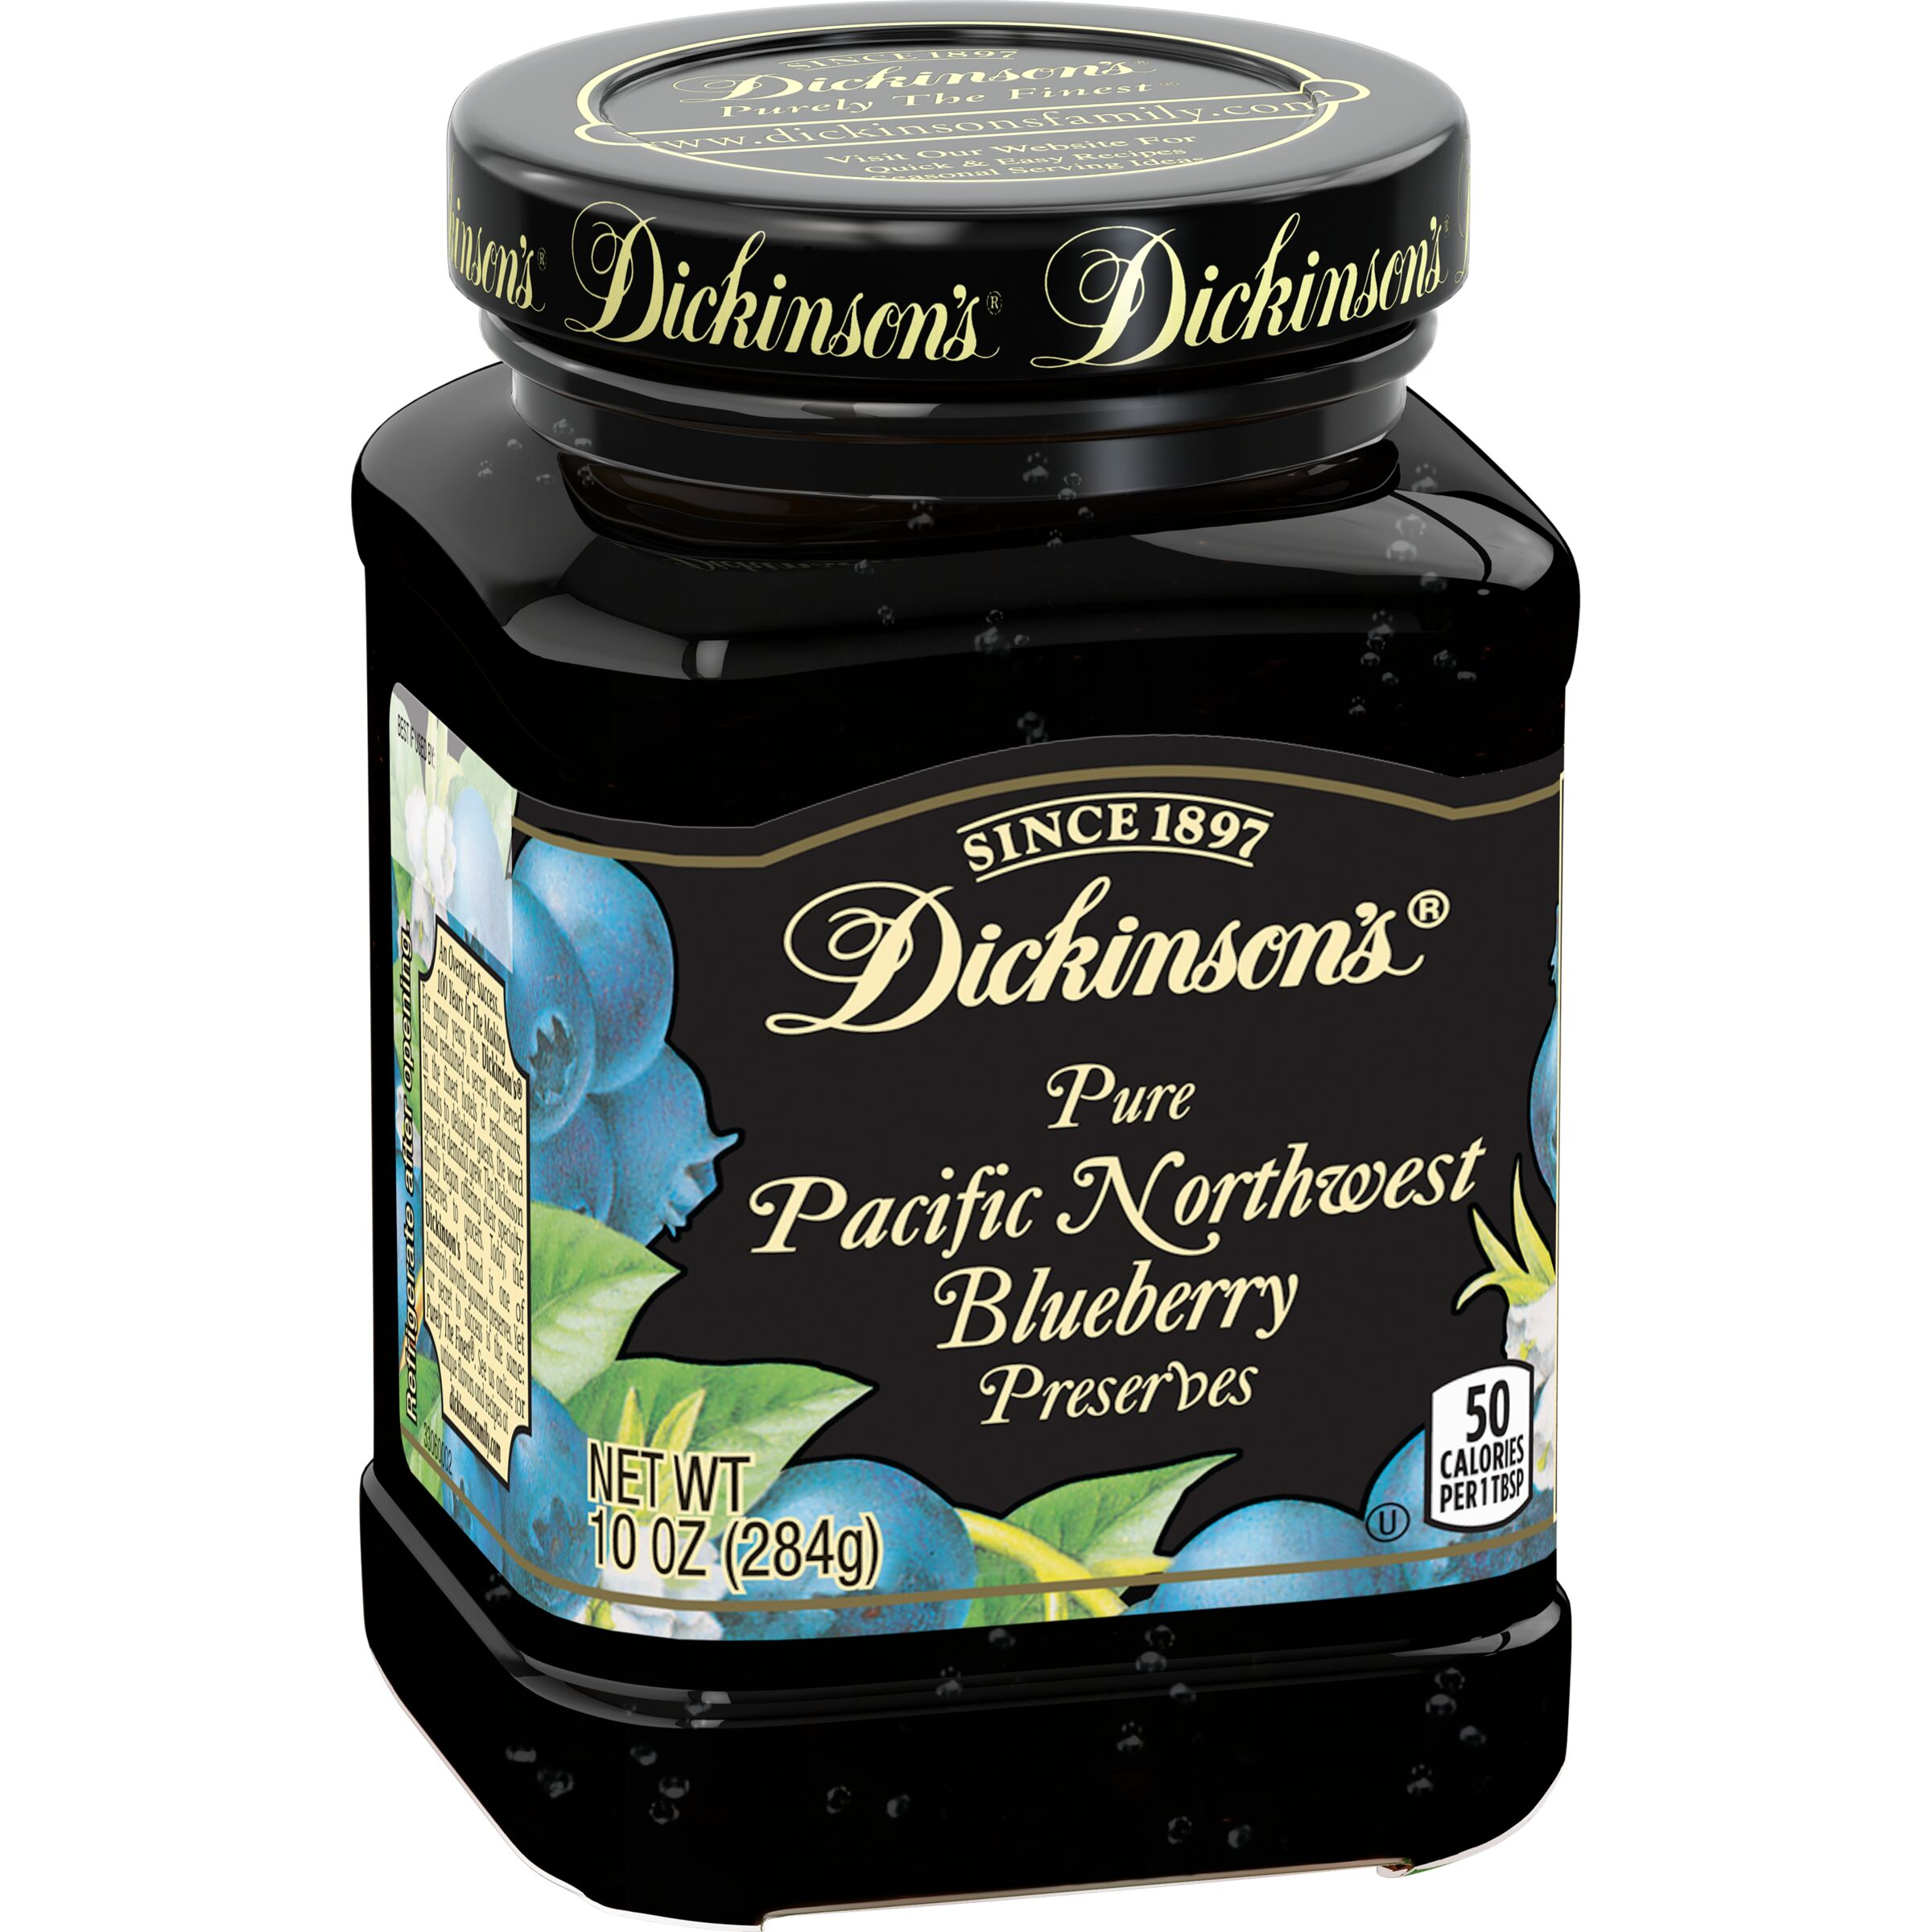 Dickinson's  Pacific Northwest Blueberry Preserves